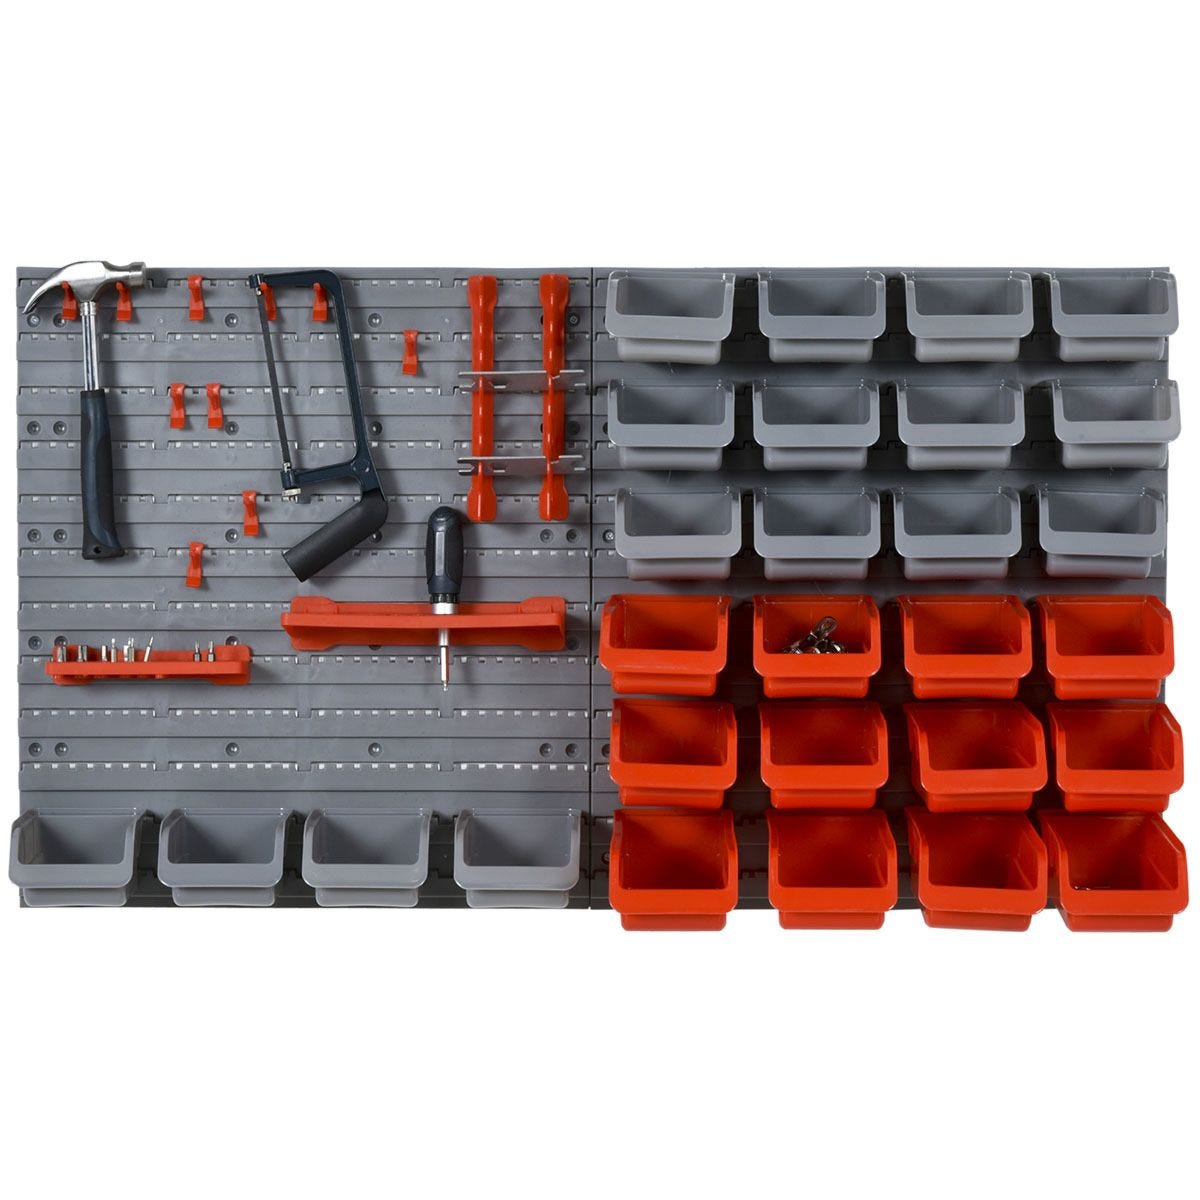 Durhand 44 Piece On-Wall DIY Storage Unit with 28 Cubes 10 Hooks 2 Boards Screws - Red & Grey